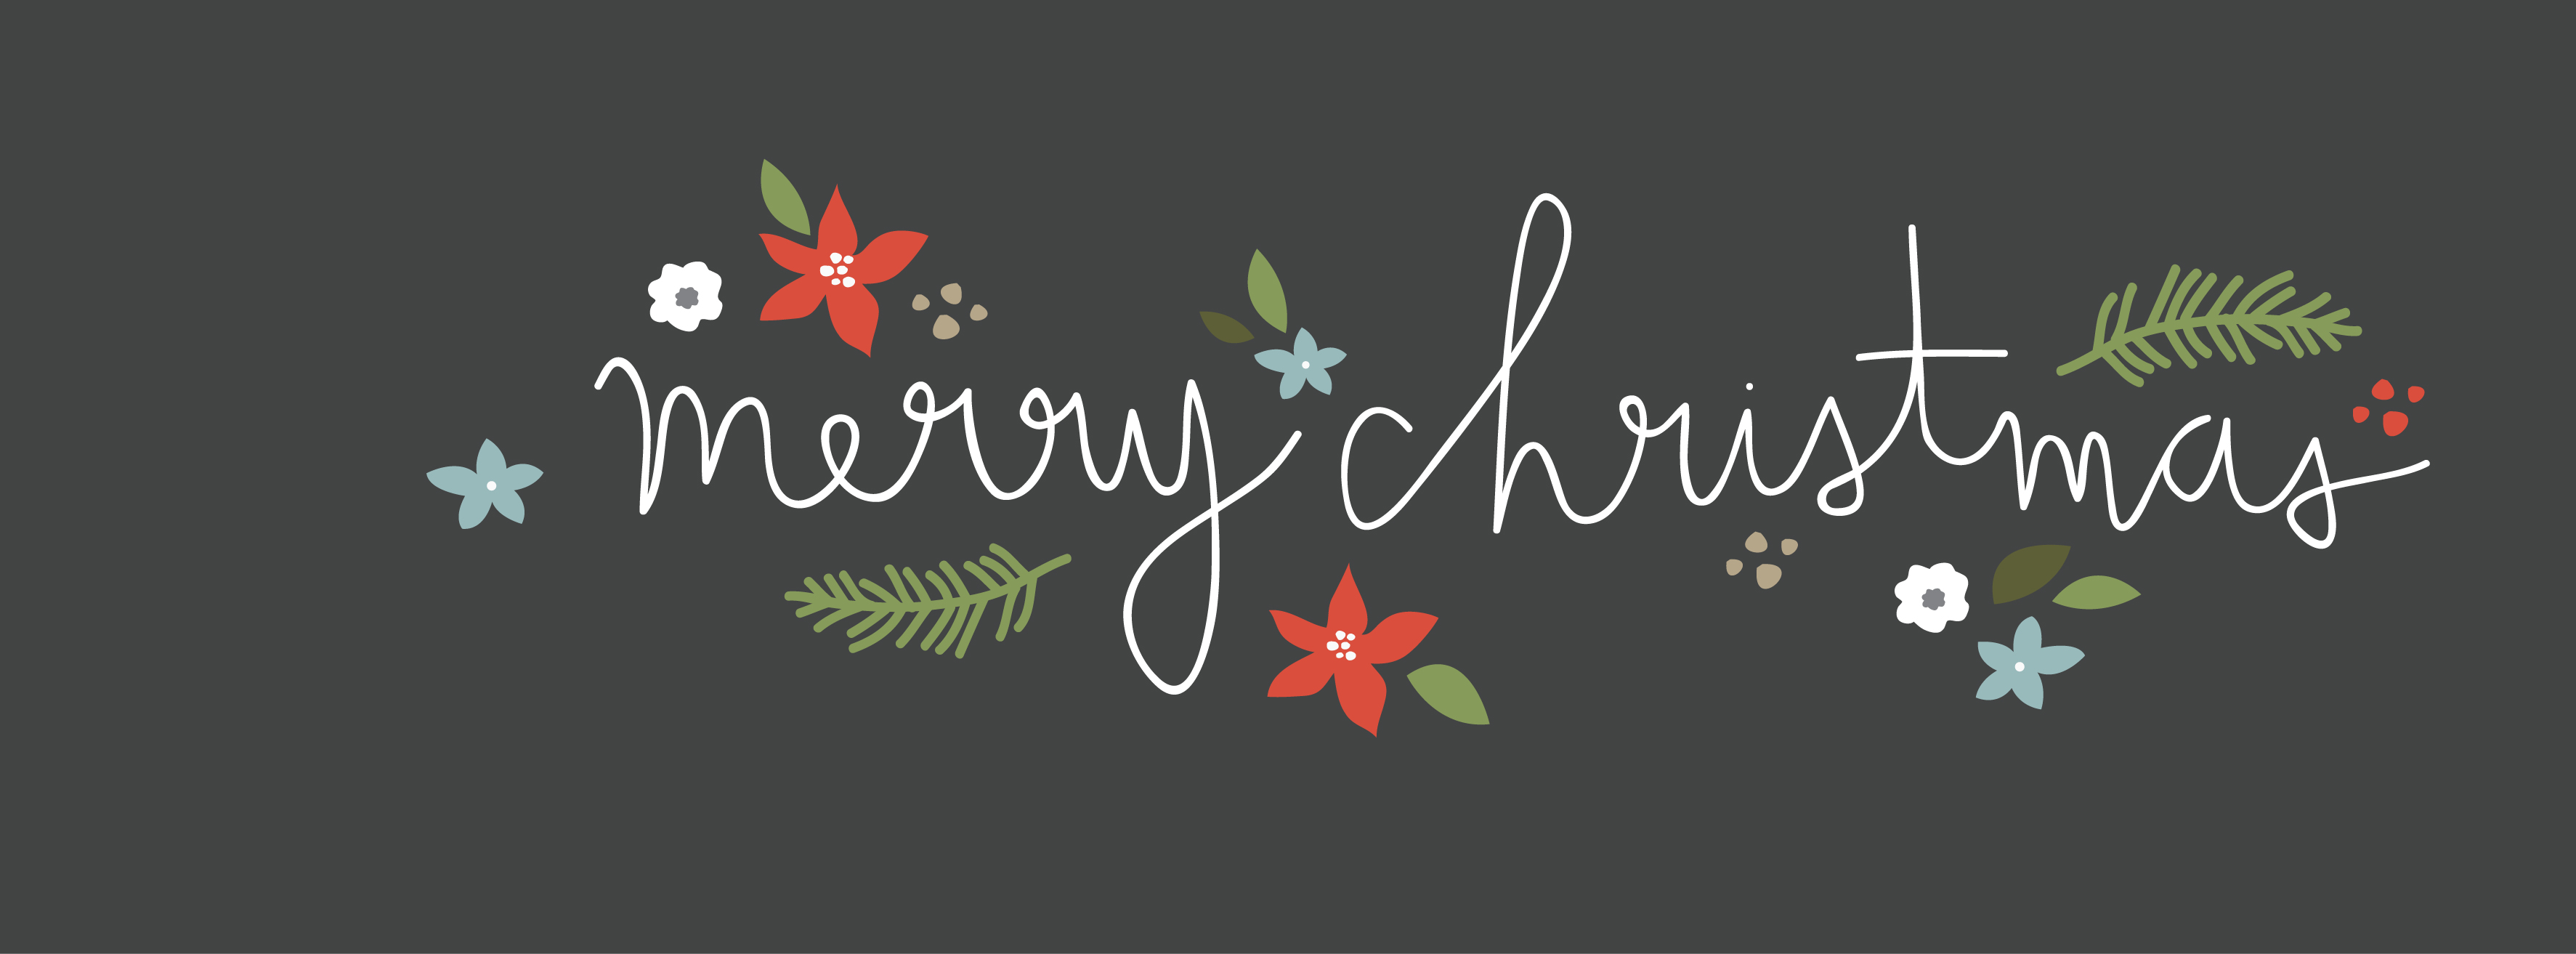 Merry Xmas 2018 / Merry Christmas Facebook Cover Photos, Banners ...